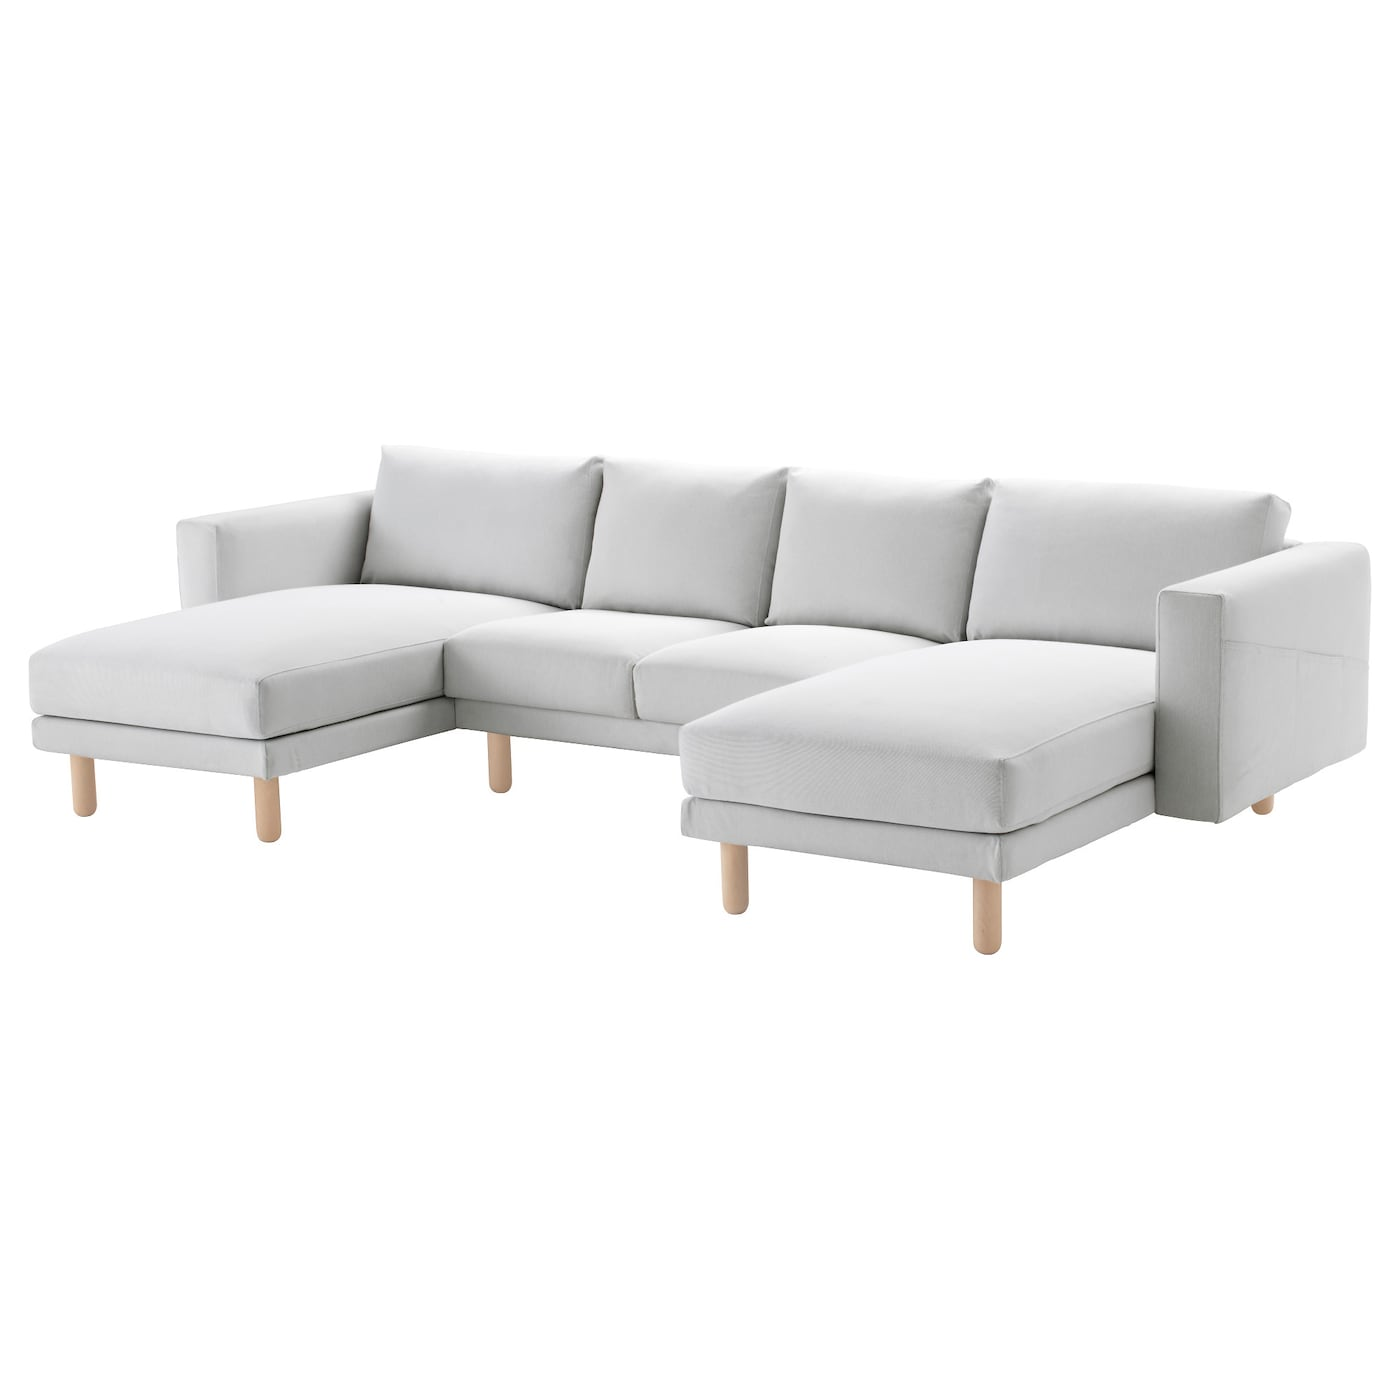 Norsborg 4 seat sofa with chaise longues finnsta white - Chaise longue jardin ikea ...